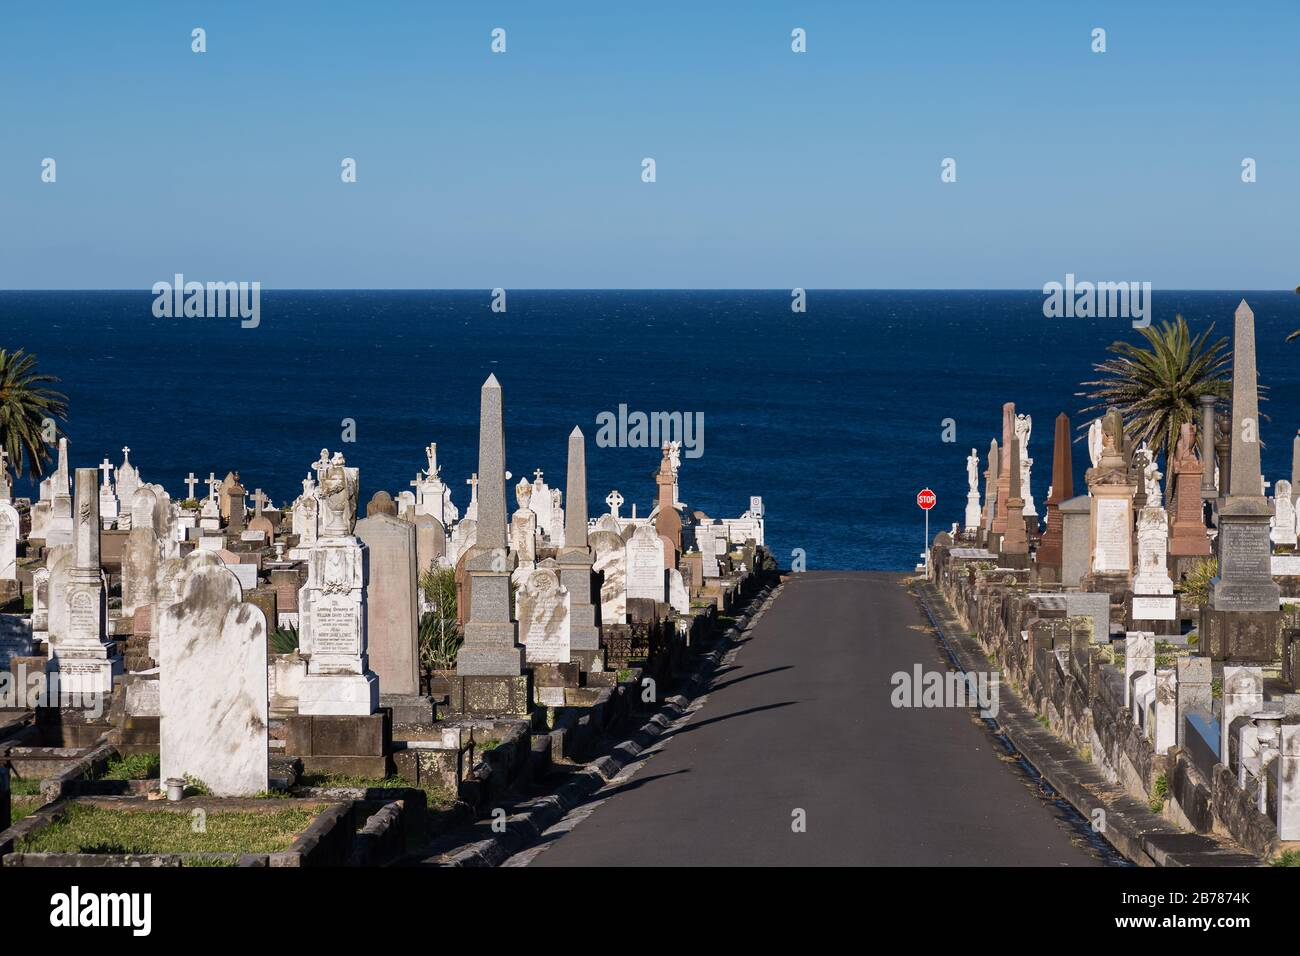 The Waverley Cemetry is a heritage-listed cemetry on top of the cliffs at Bronte in the eastern suburbs of Sydney, NSW, Australia. The coastal walk wa Stock Photo